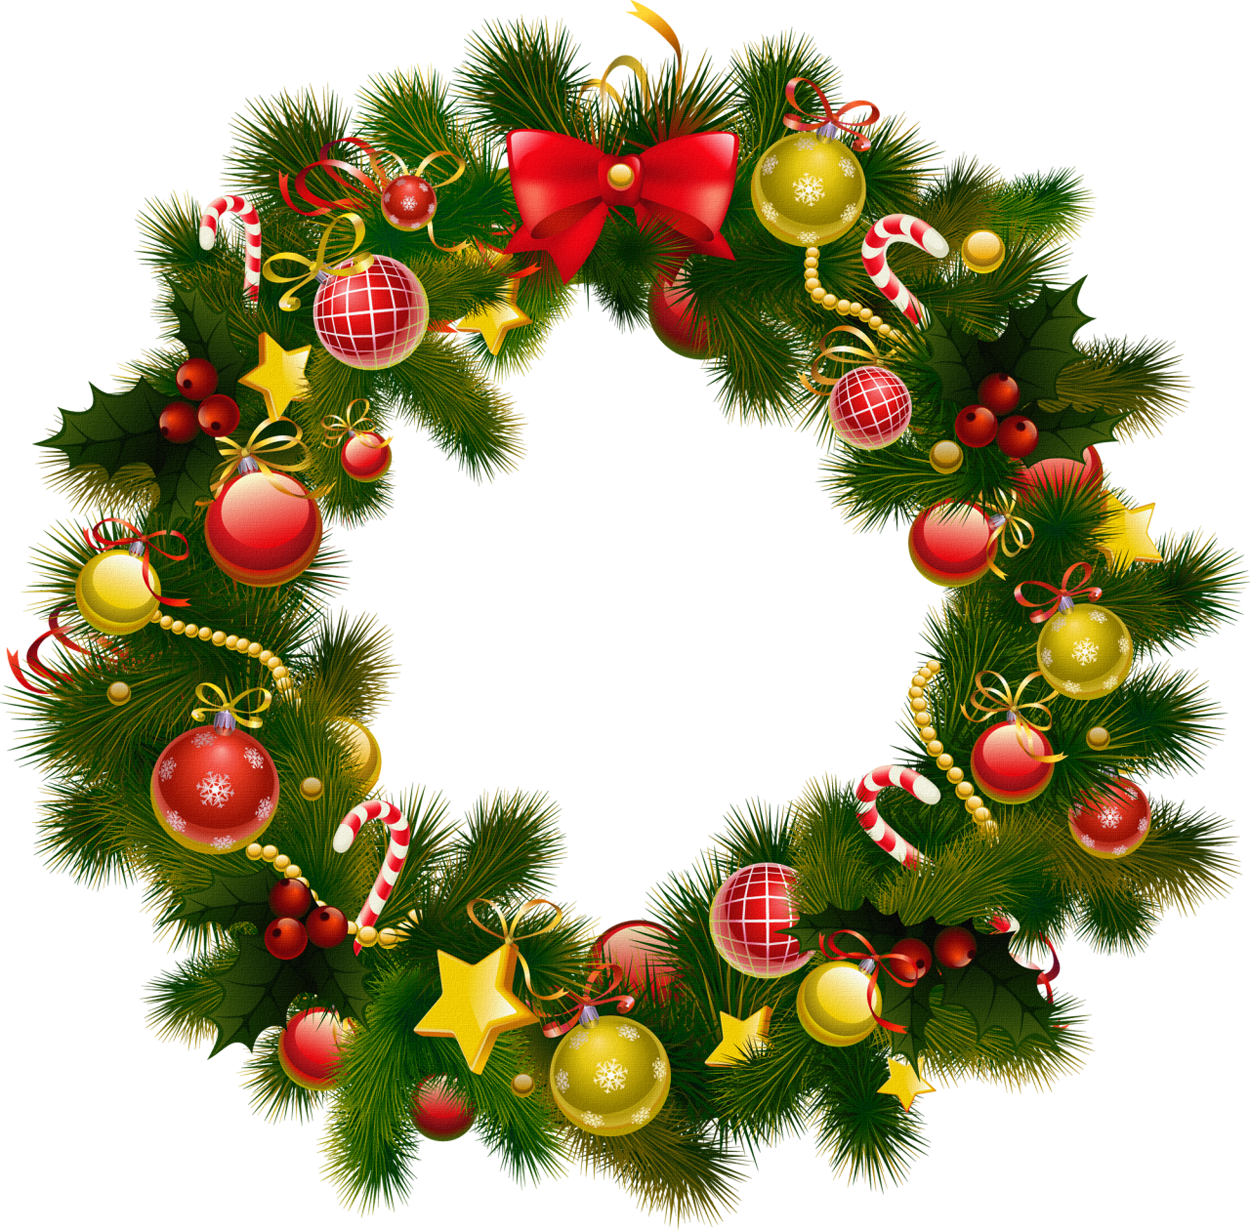 Merry Christmas clipart holiday garland Garland Free Clipart Christmas Images